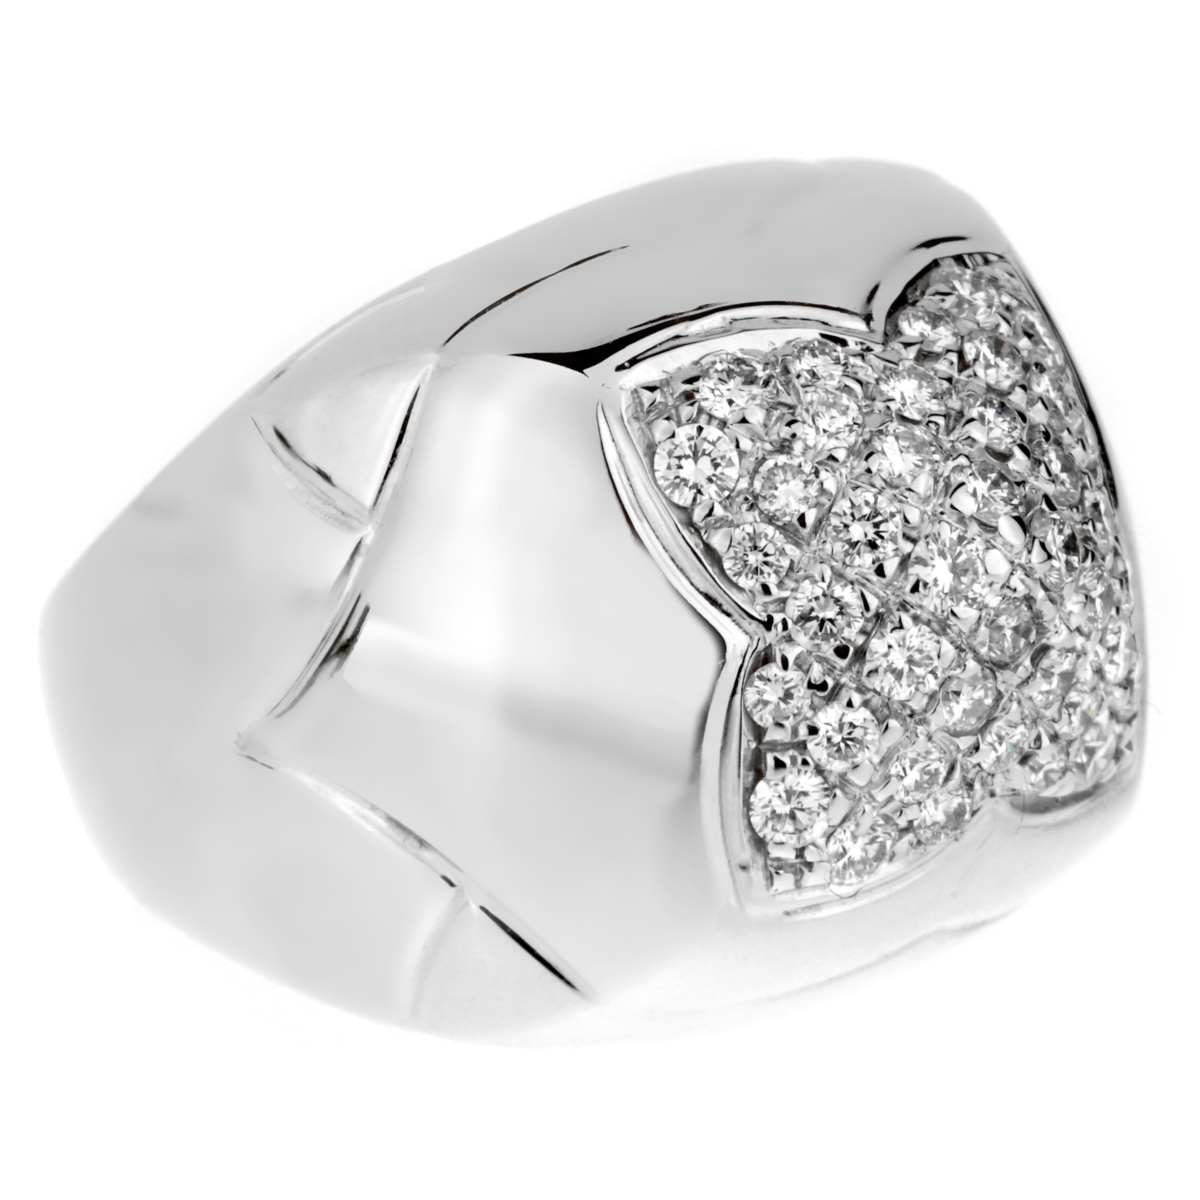 Bulgari Pyramid Diamond White Gold Ring - Bulgari Jewelry